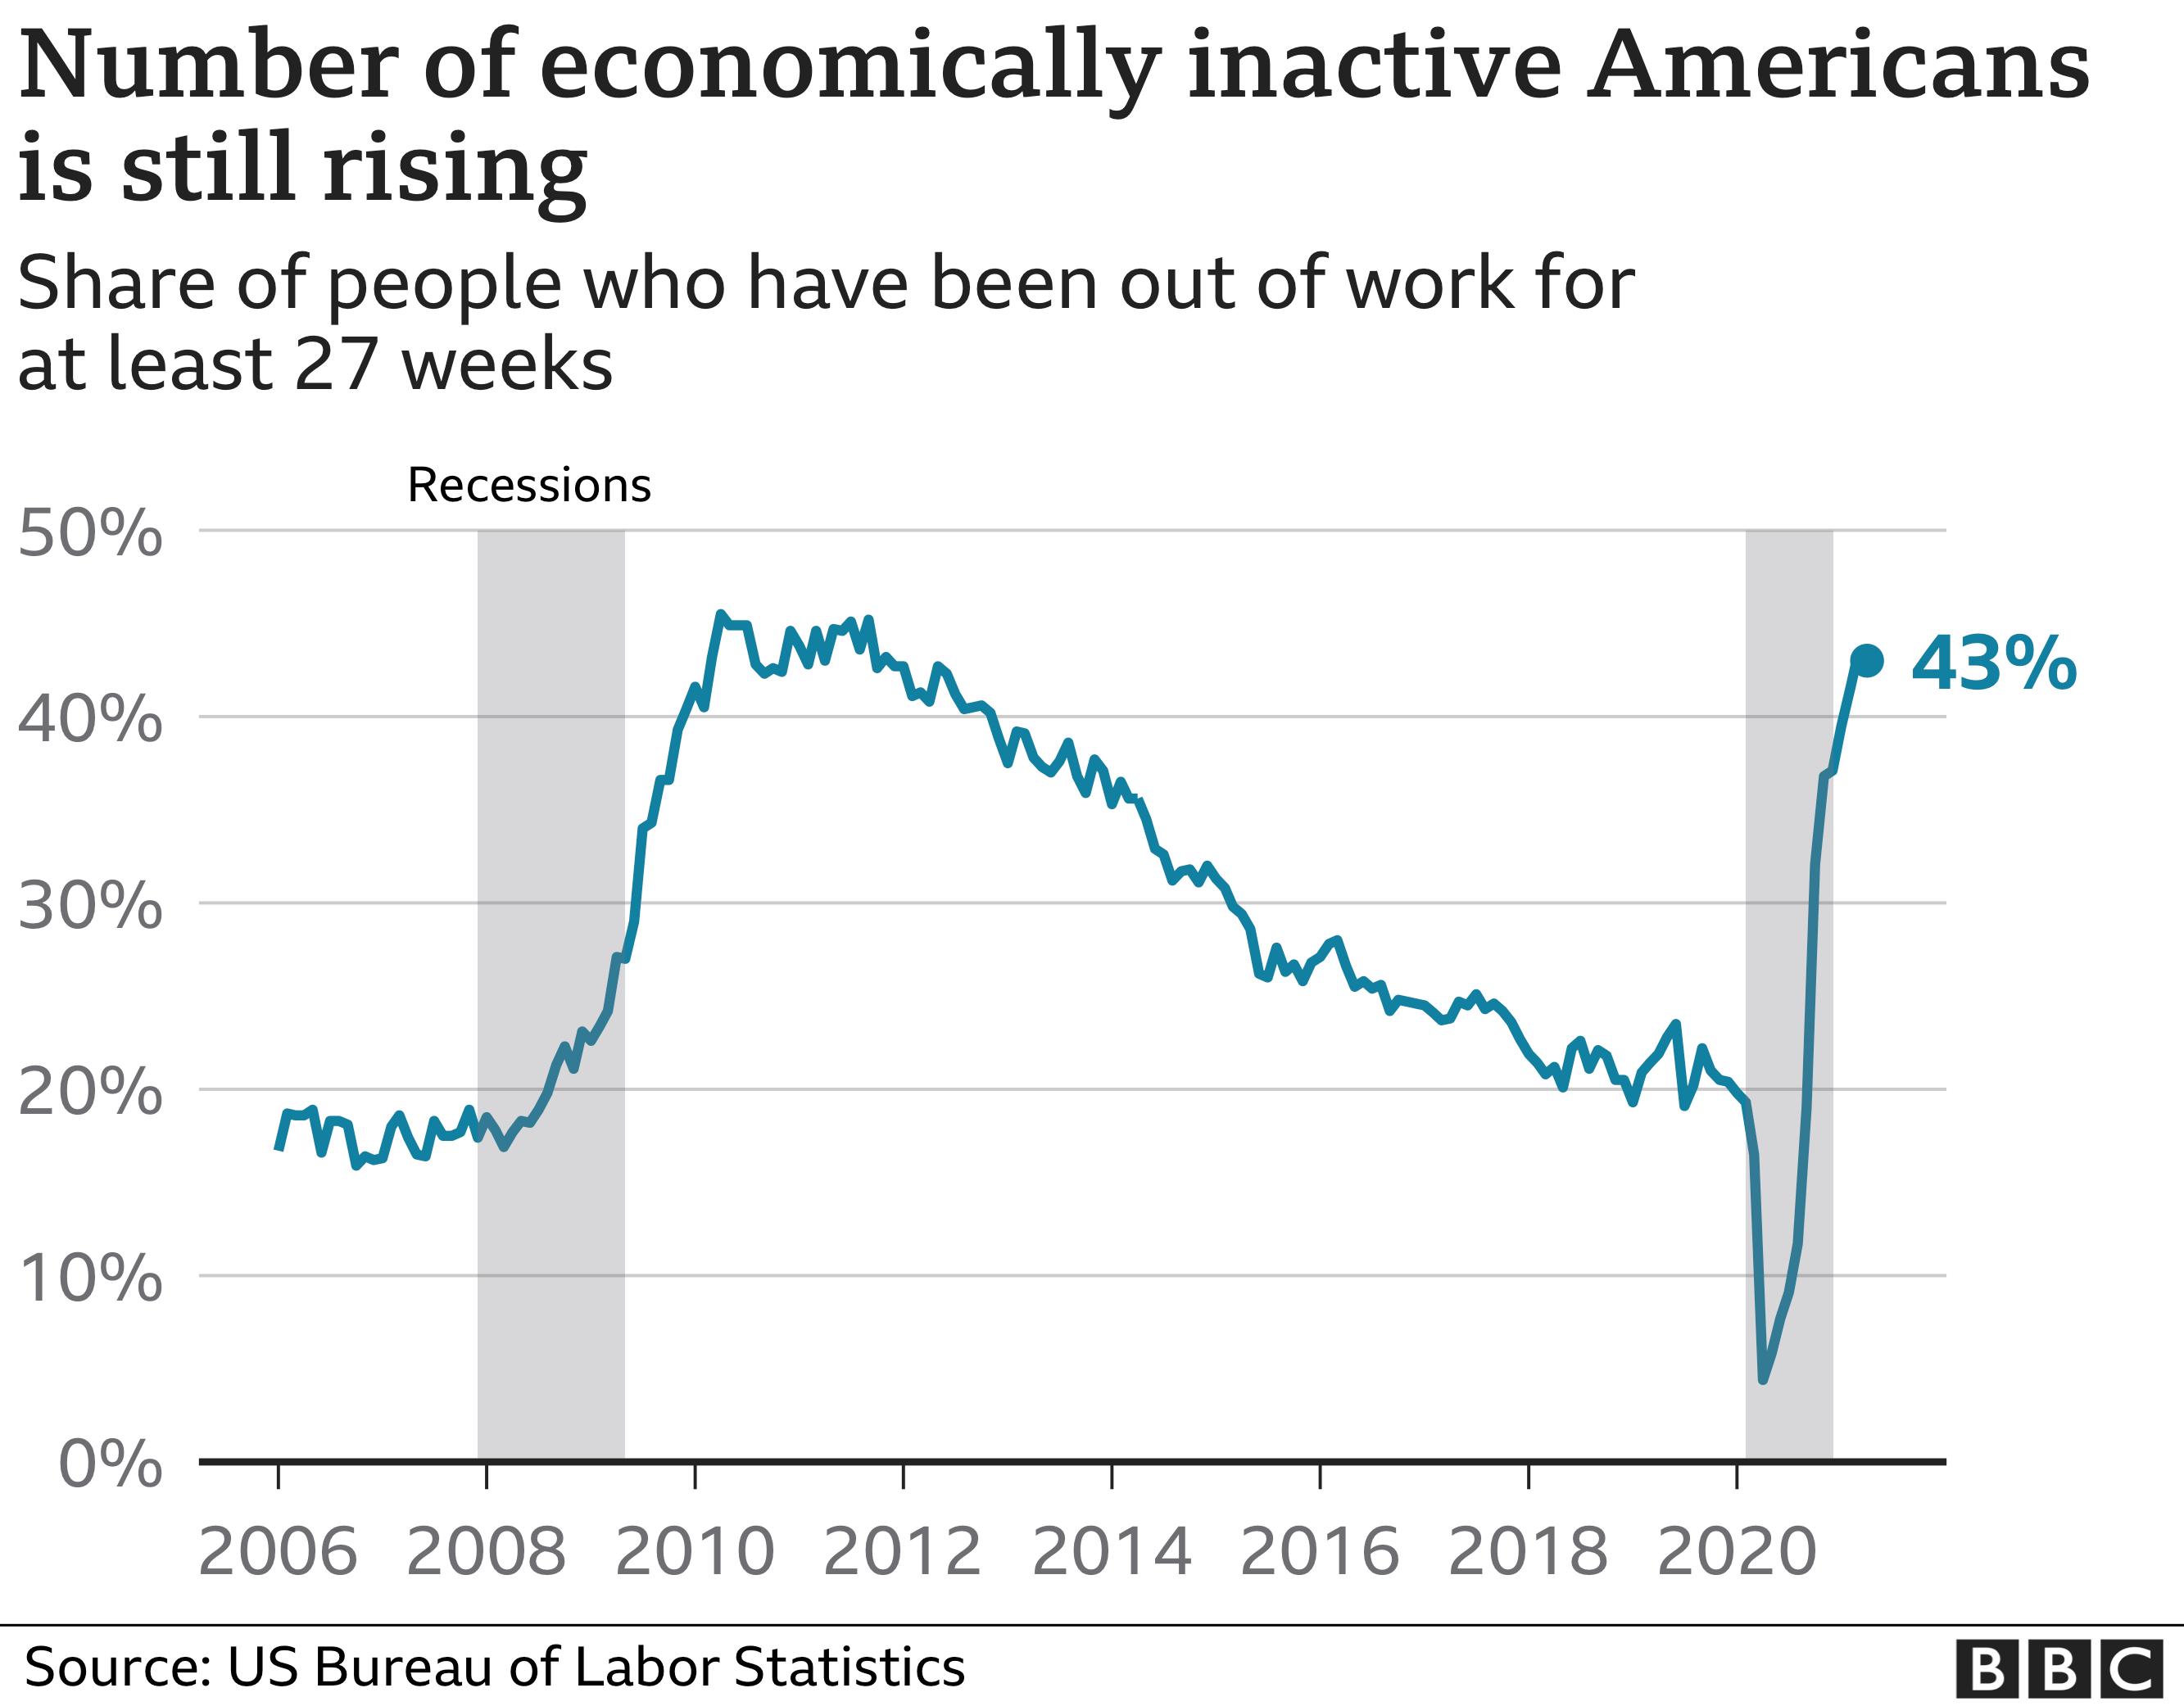 Number of economically inactive Americans is still rising